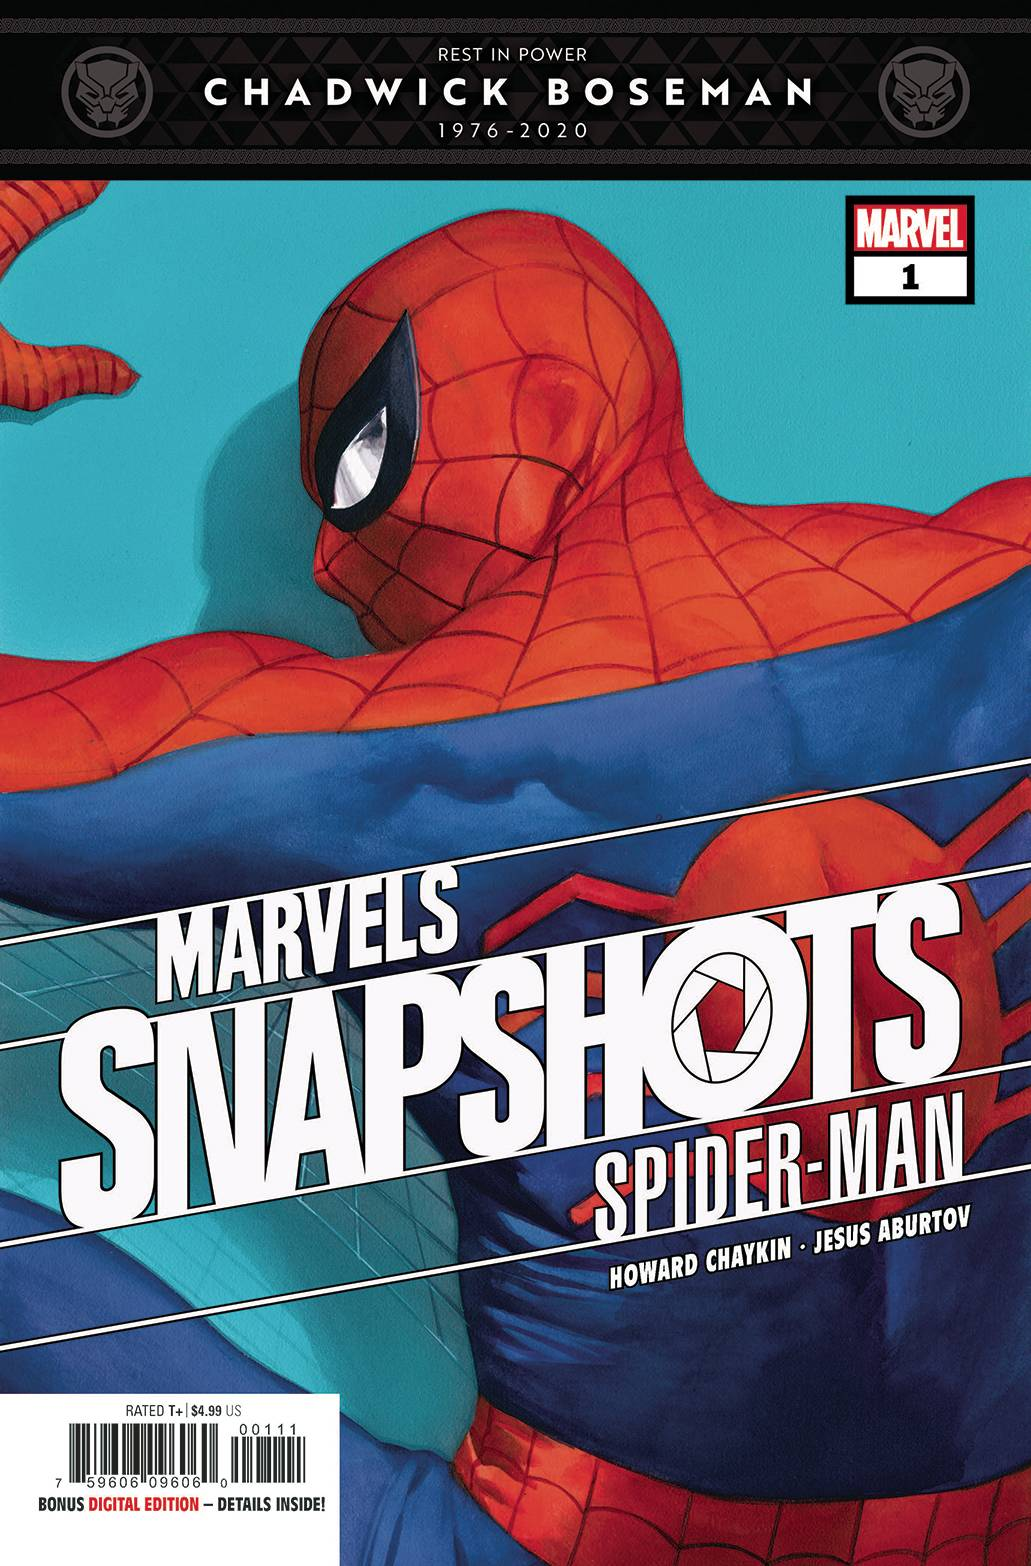 SPIDER-MAN MARVELS SNAPSHOT #1